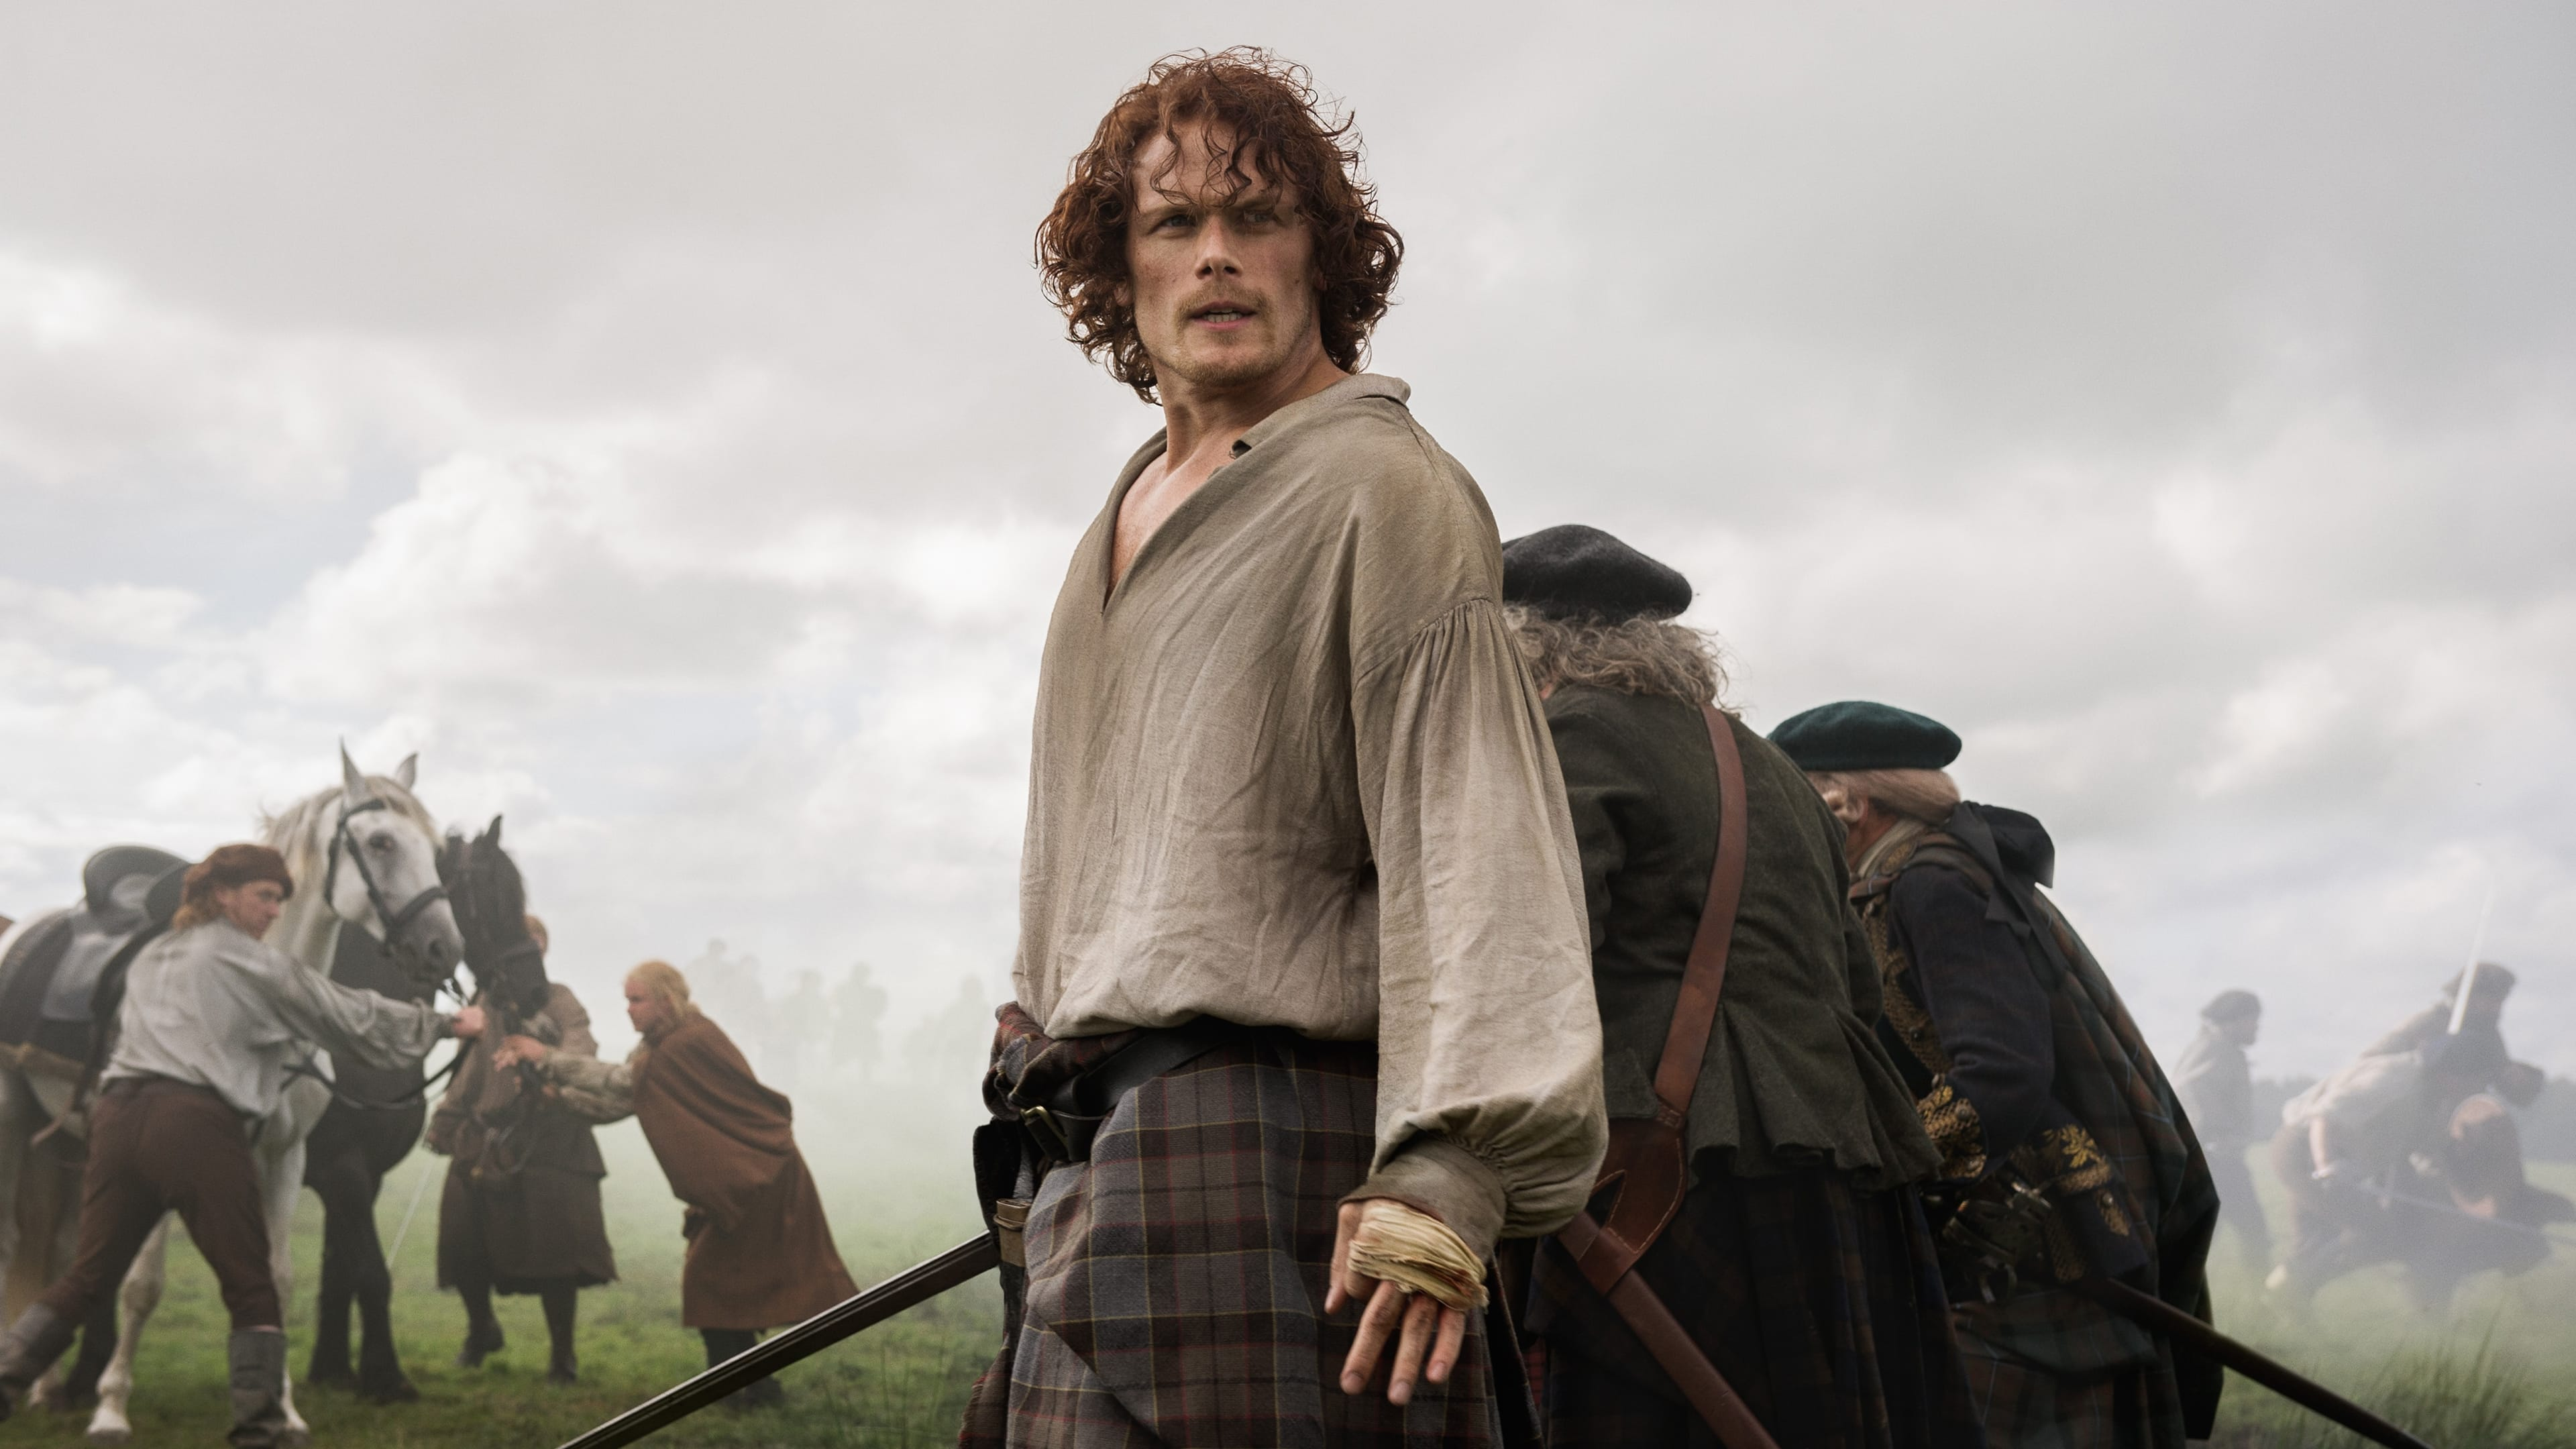 Project free tv outlander season 1